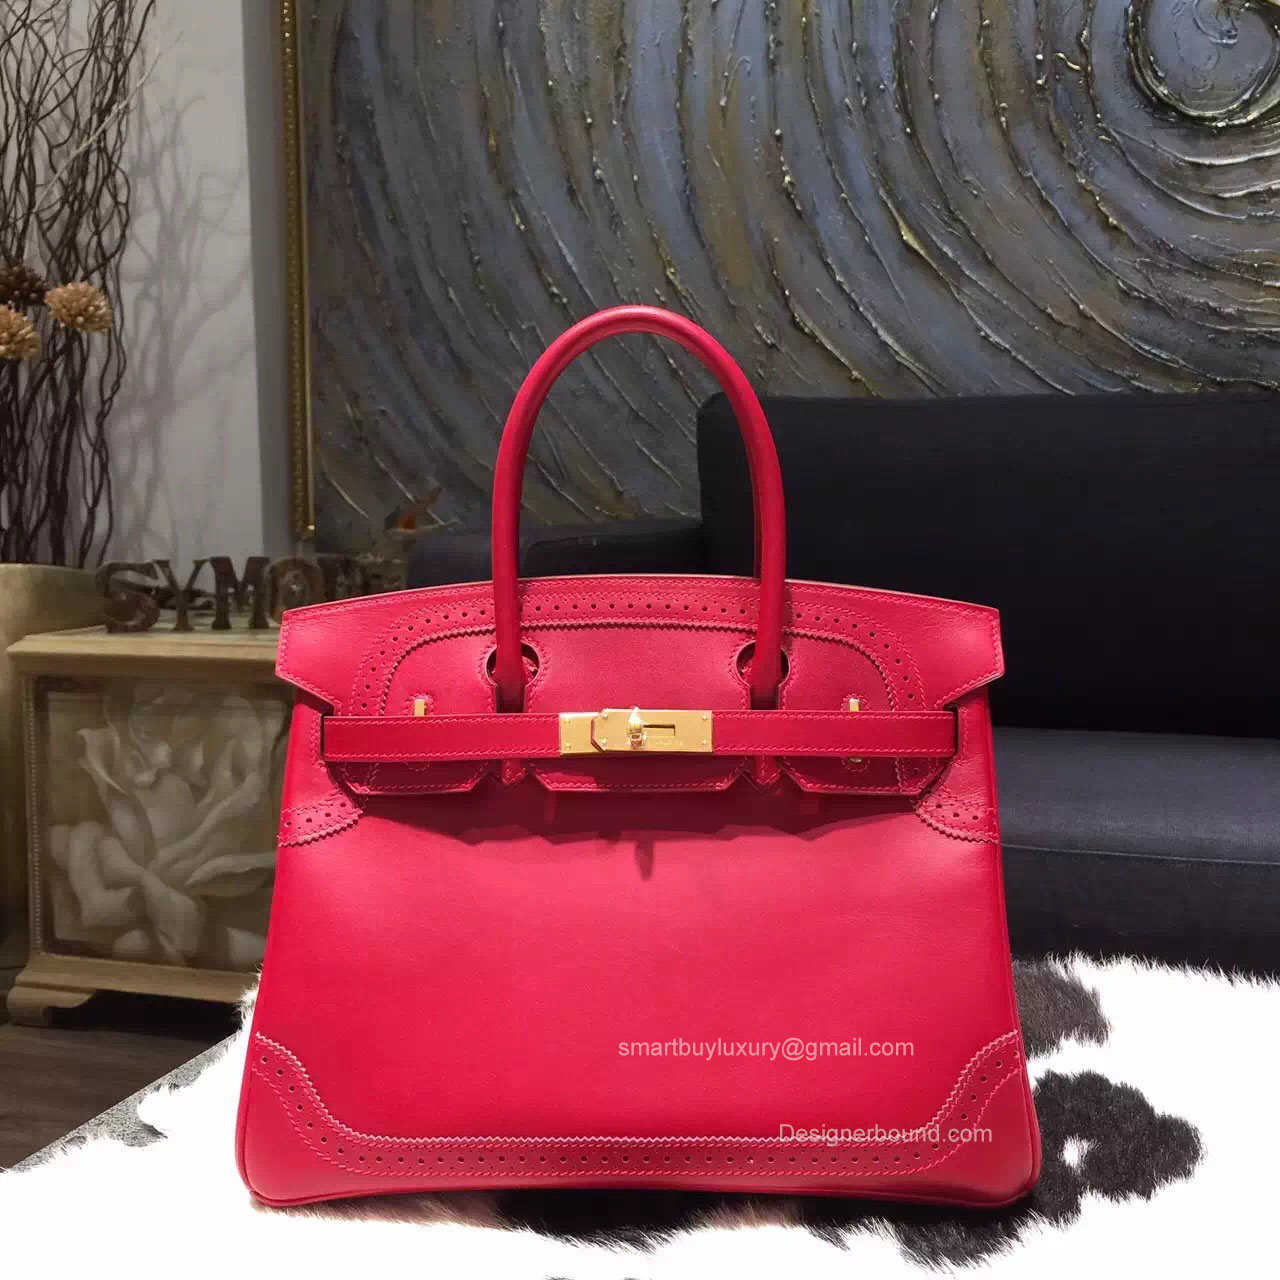 Hermes Birkin 35 Ghillies Ruby Tedelakt Smooth Leather Handstitched Gold hw